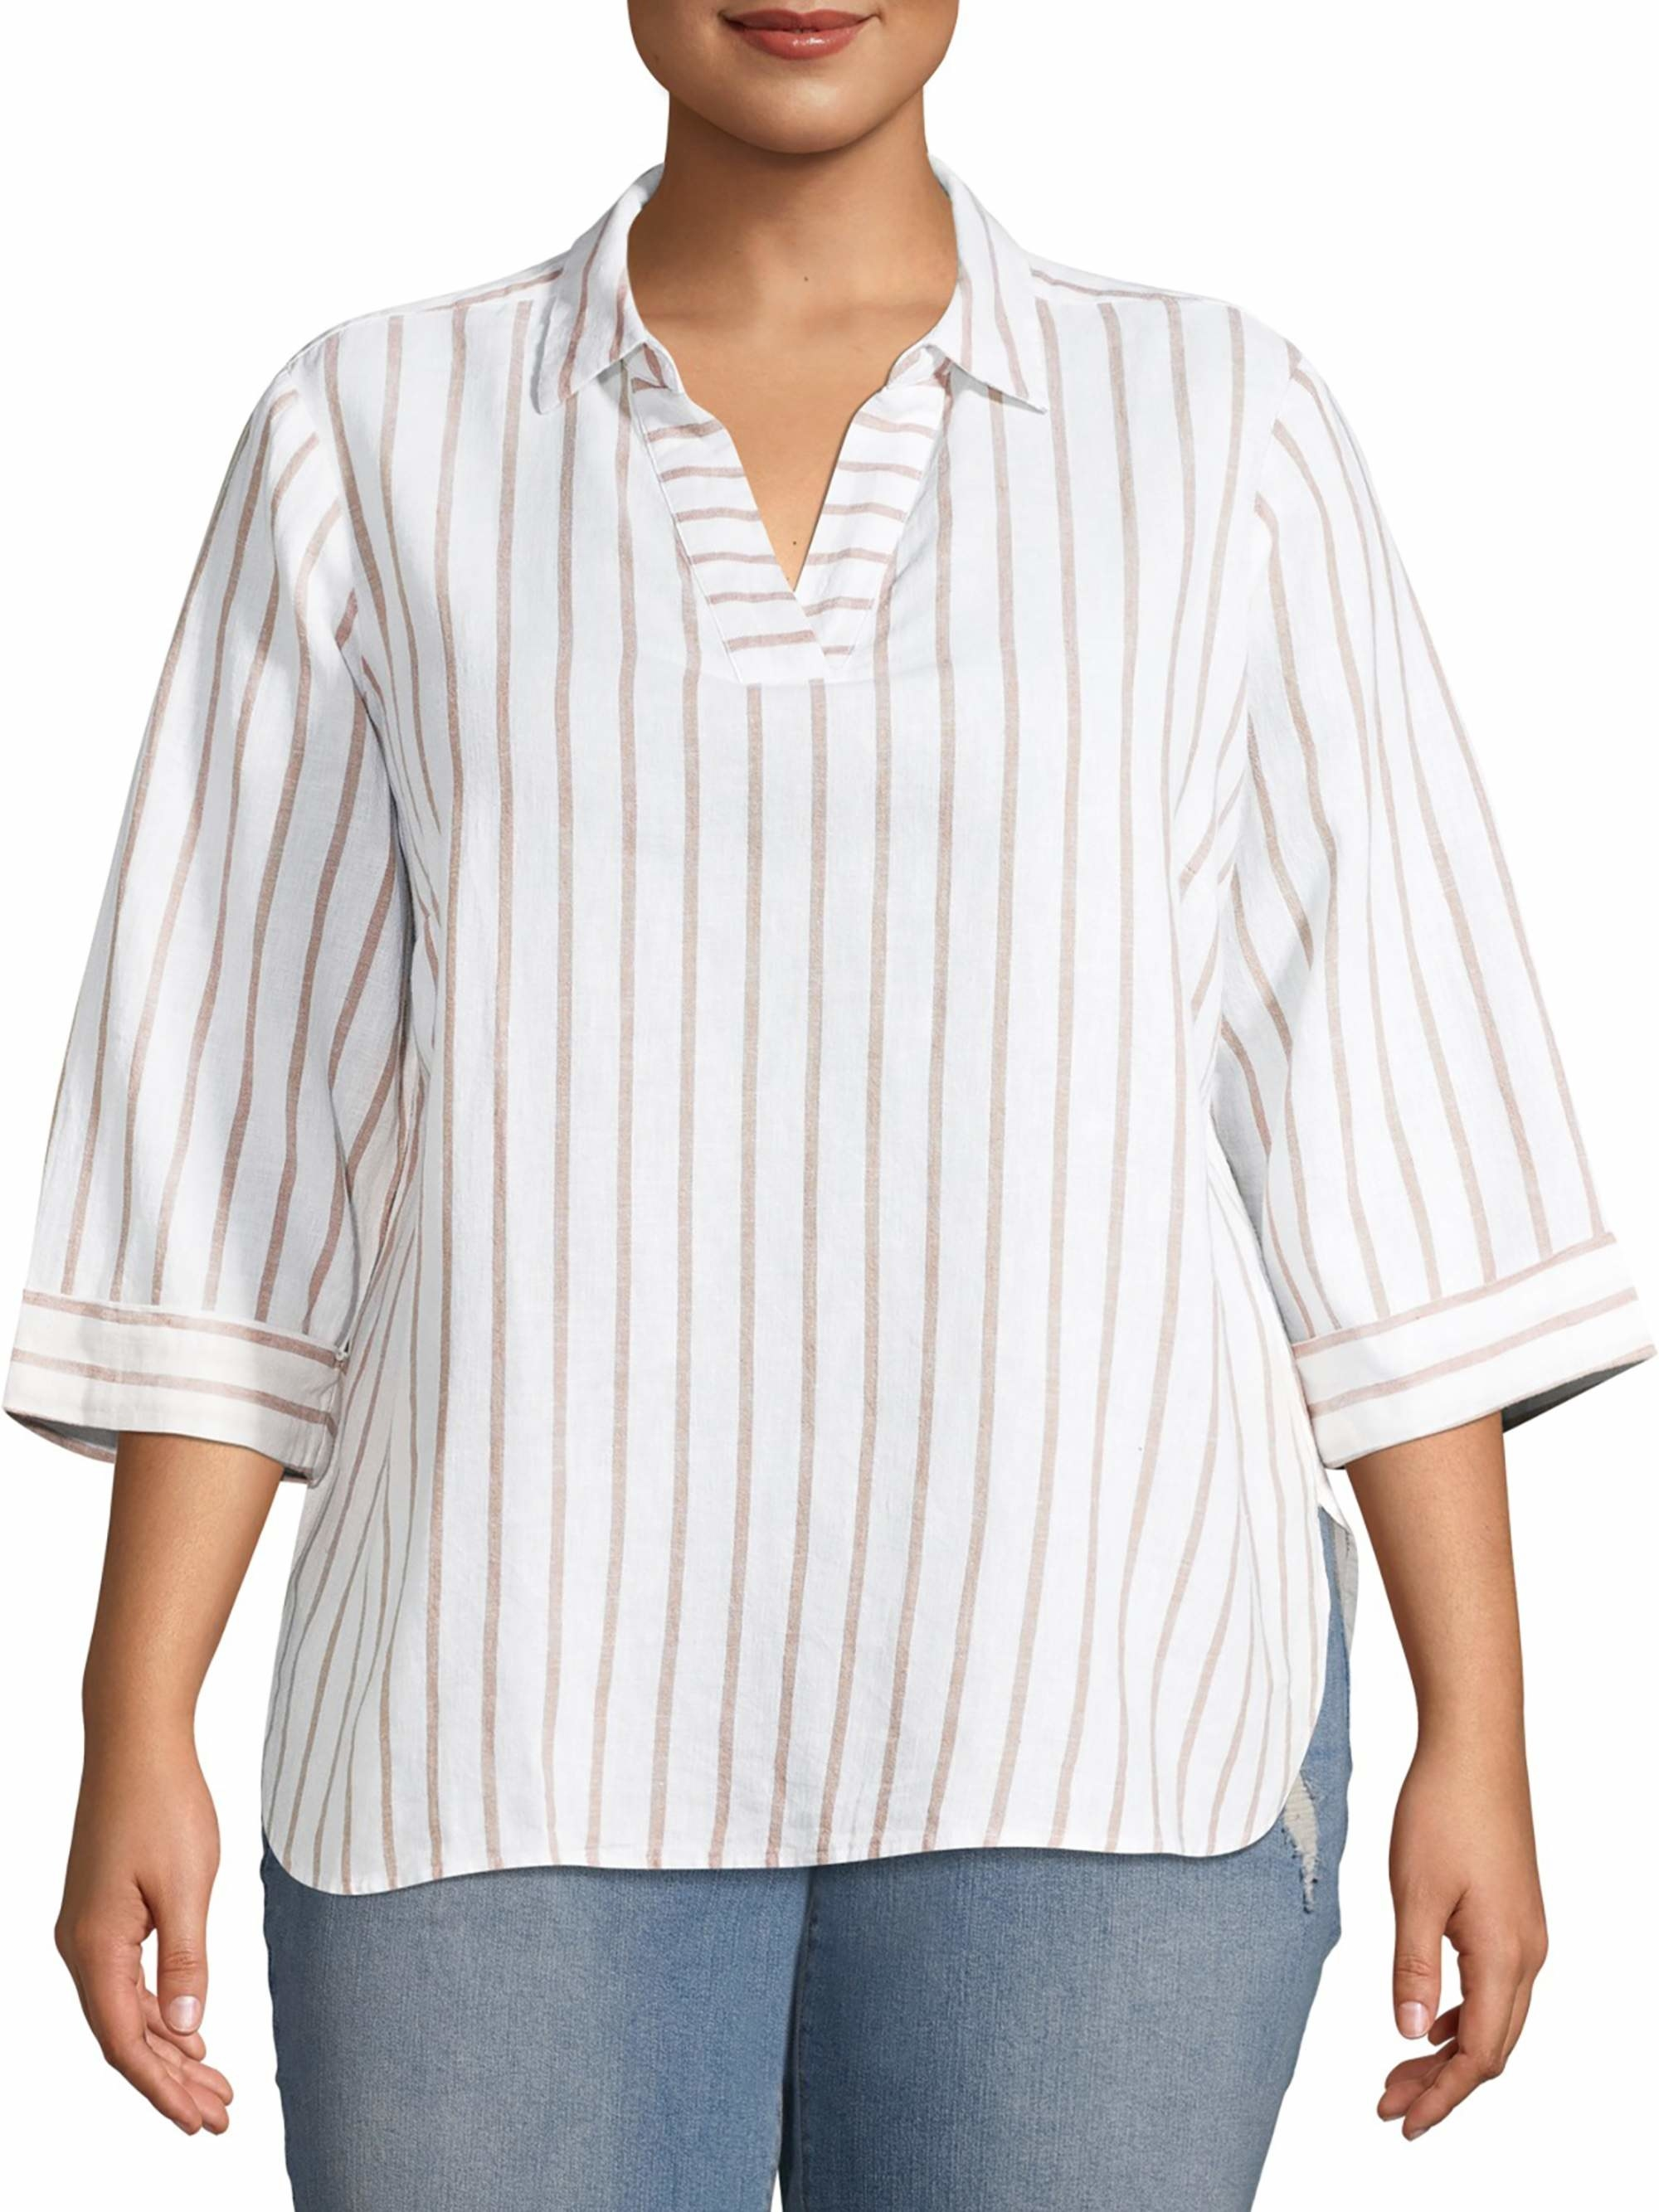 The white and tan striped blouse